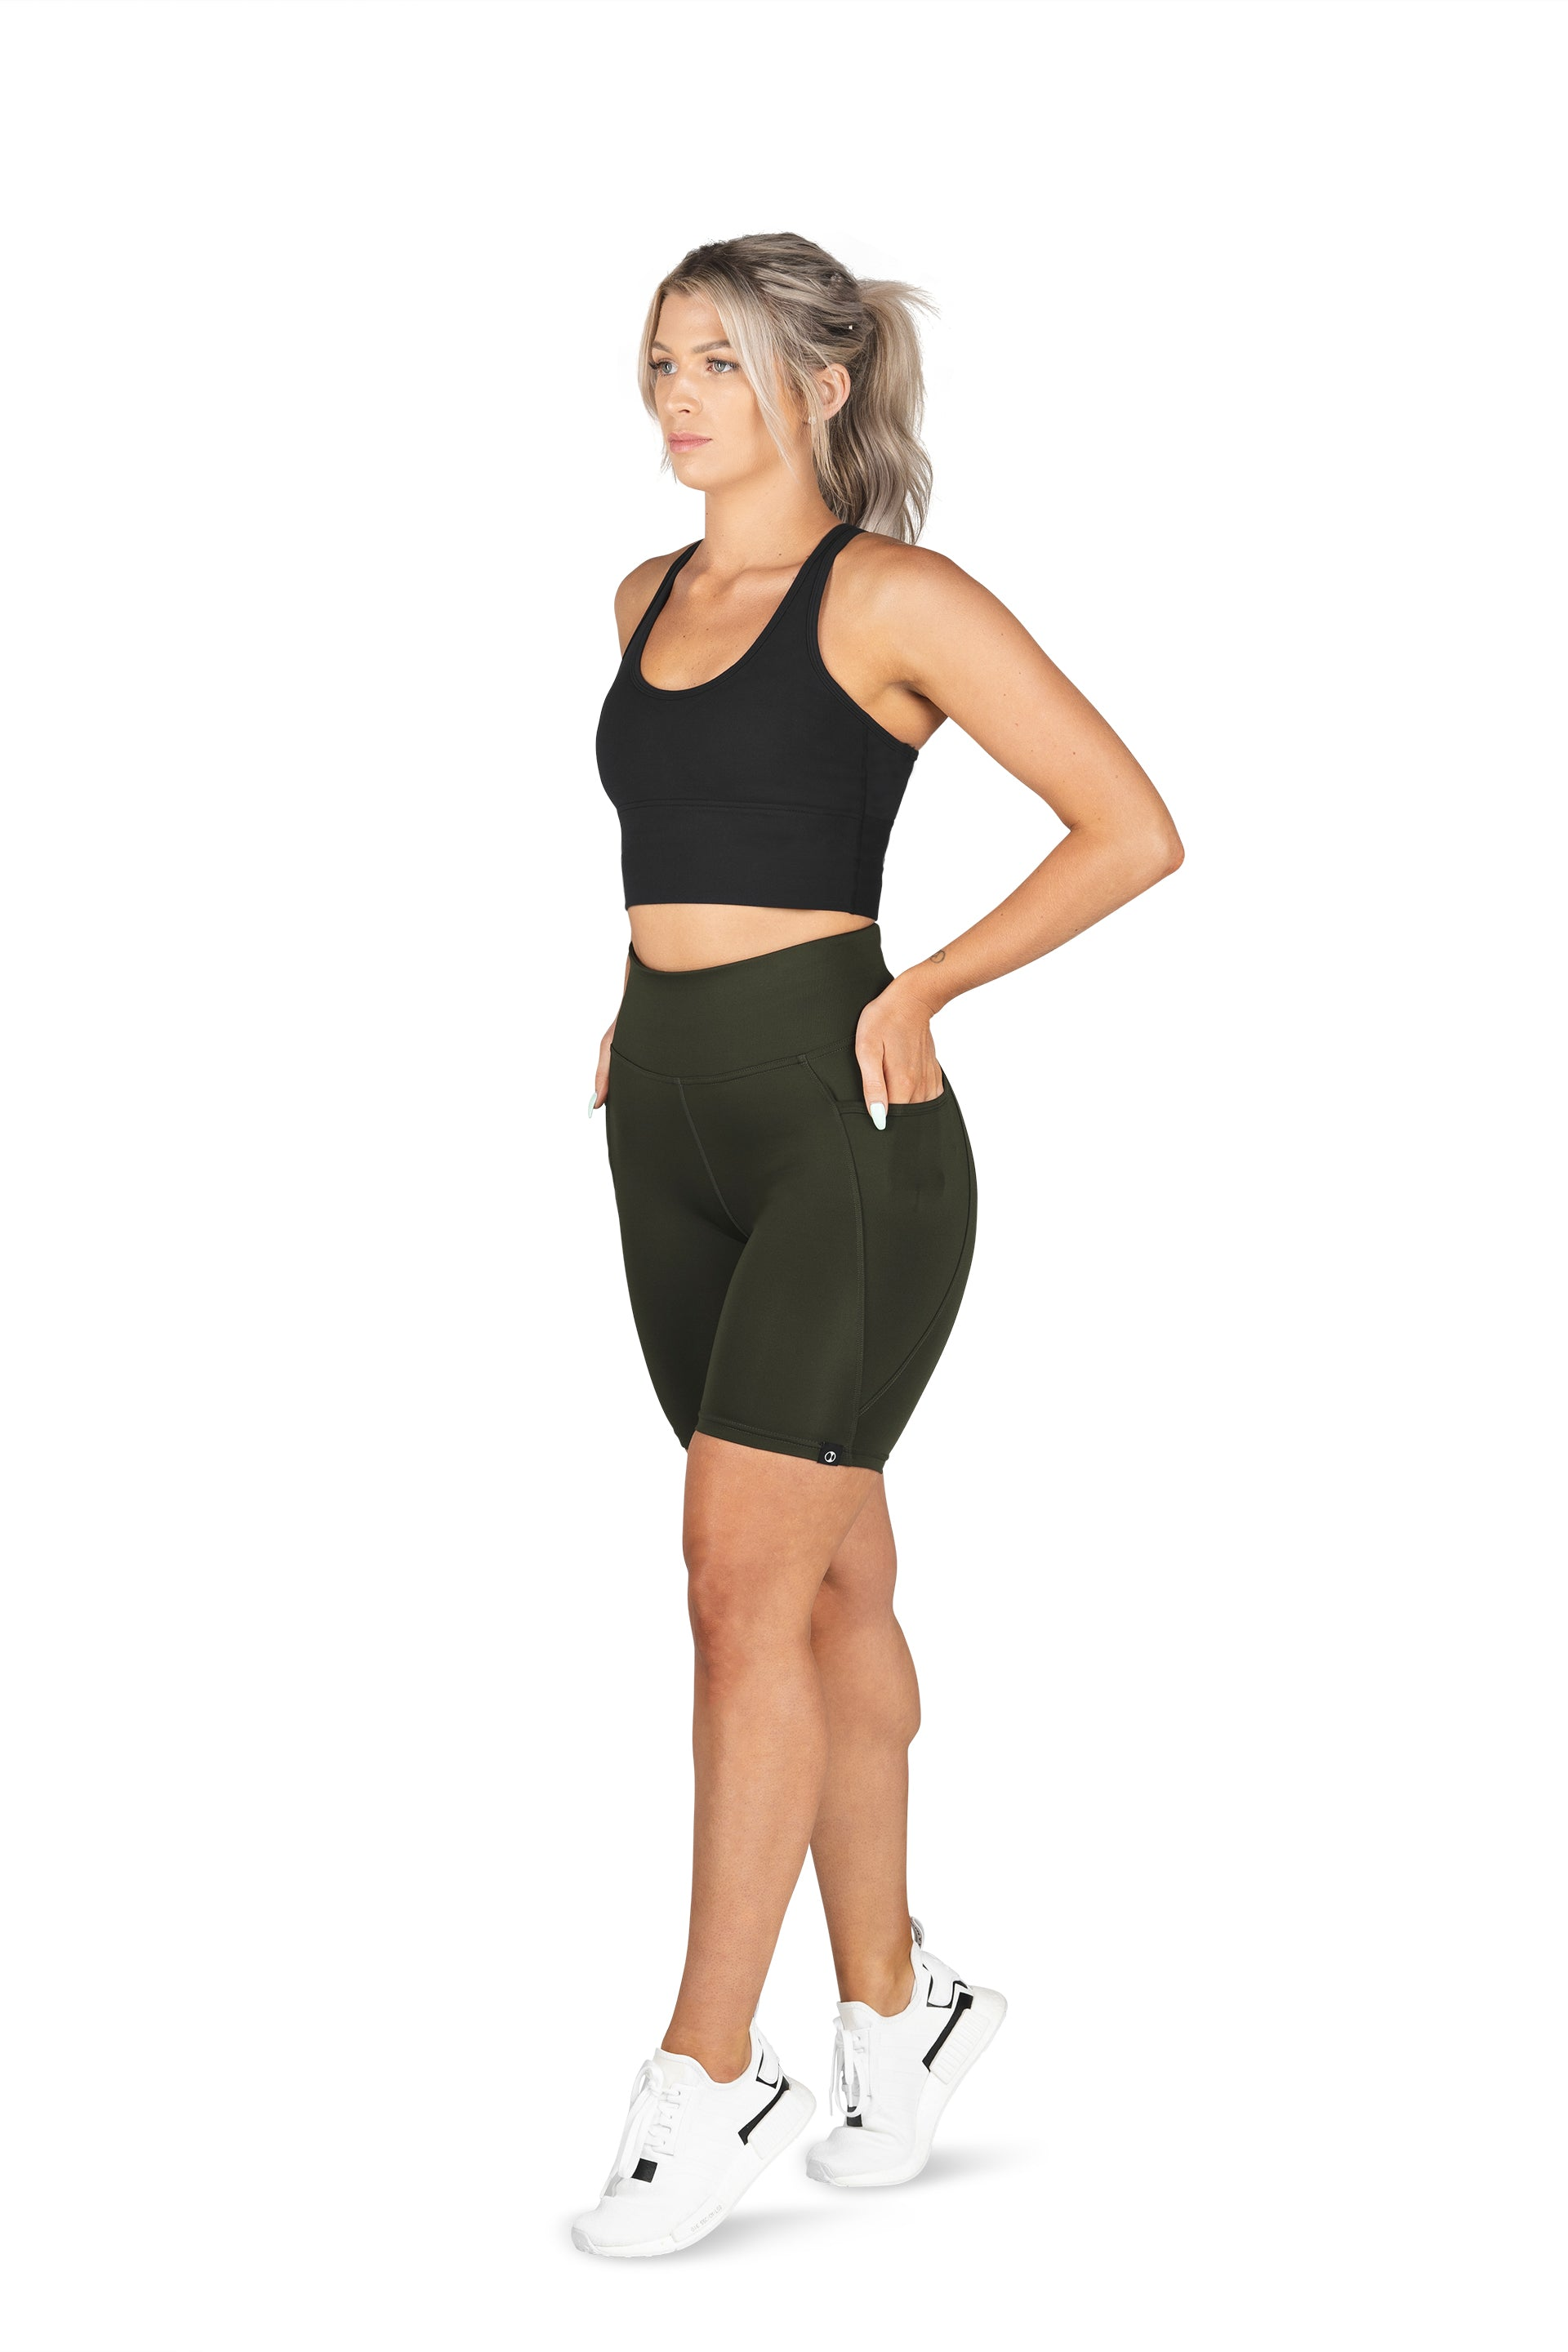 HIGH WAISTED SIDE POCKET SHORT ( RECYCLED PERFORMANCE KNIT ) - GREEN